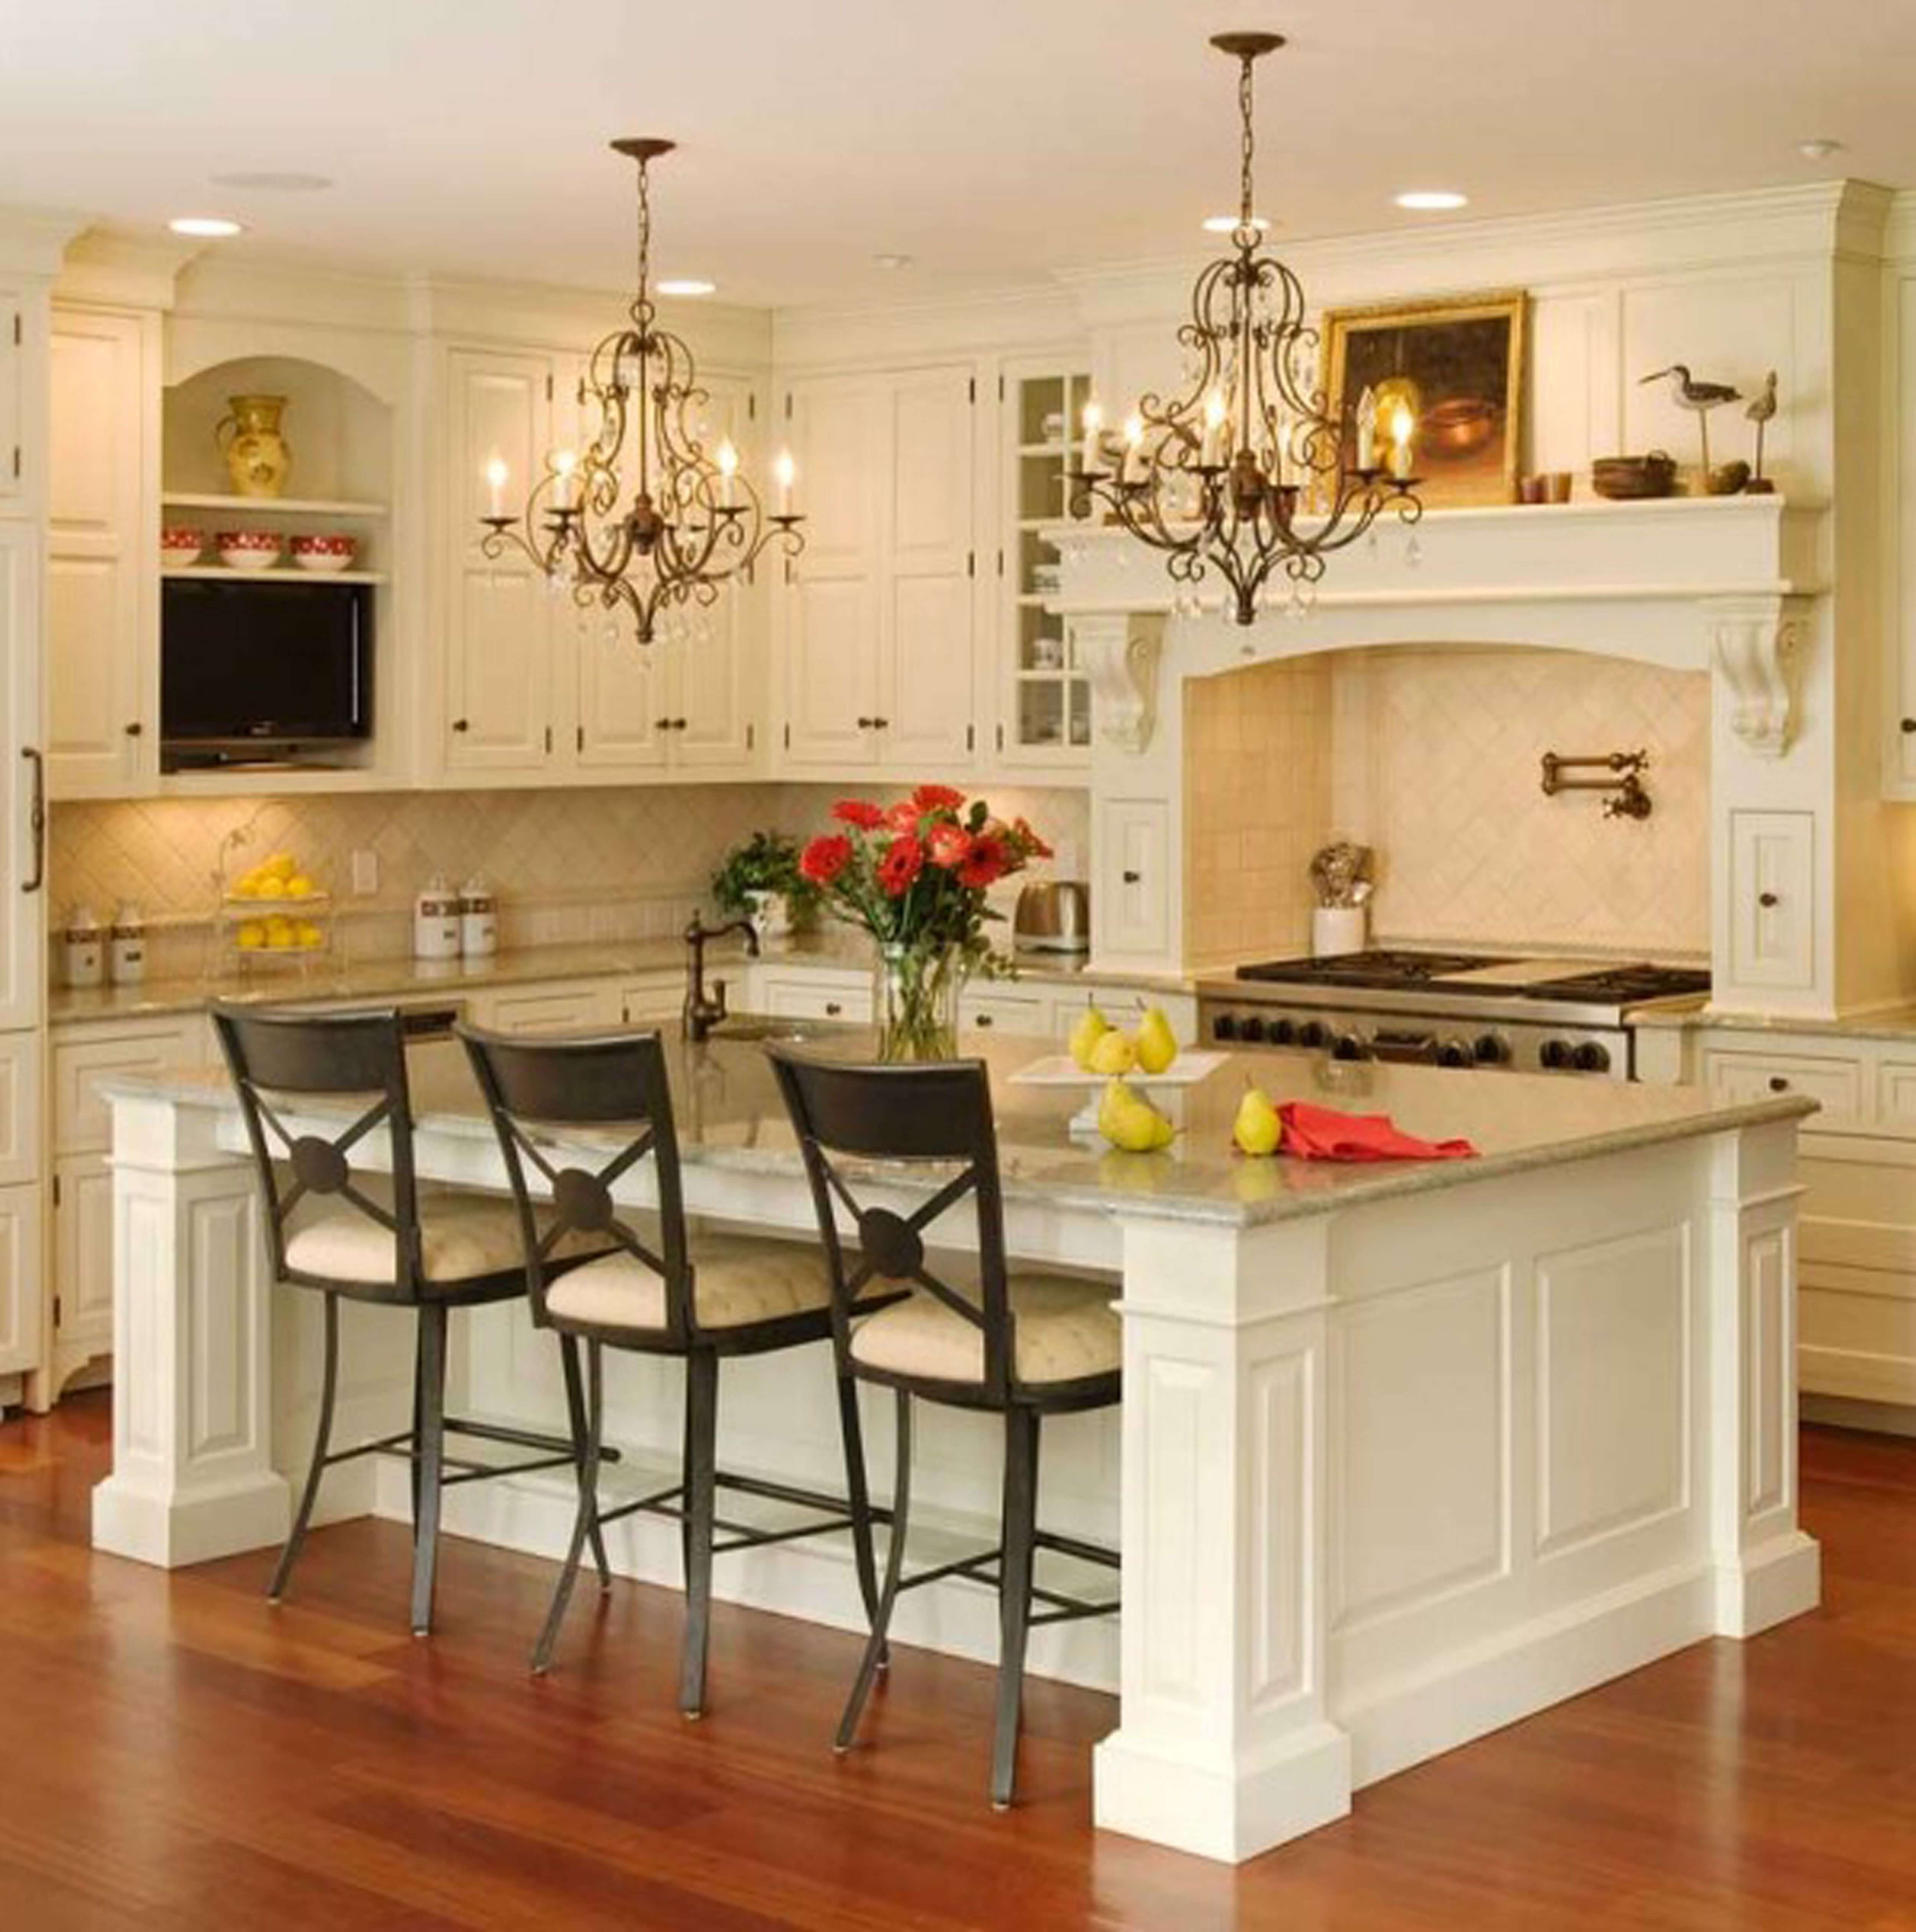 decorating-amazing-traditional-italian-kitchen-decoration-ideas-for-home-with-twin-classic-chandelier-above-big-marble-top-kitchen-island-with-breakfast-nook-design-ideas-decoration-ideas (1)